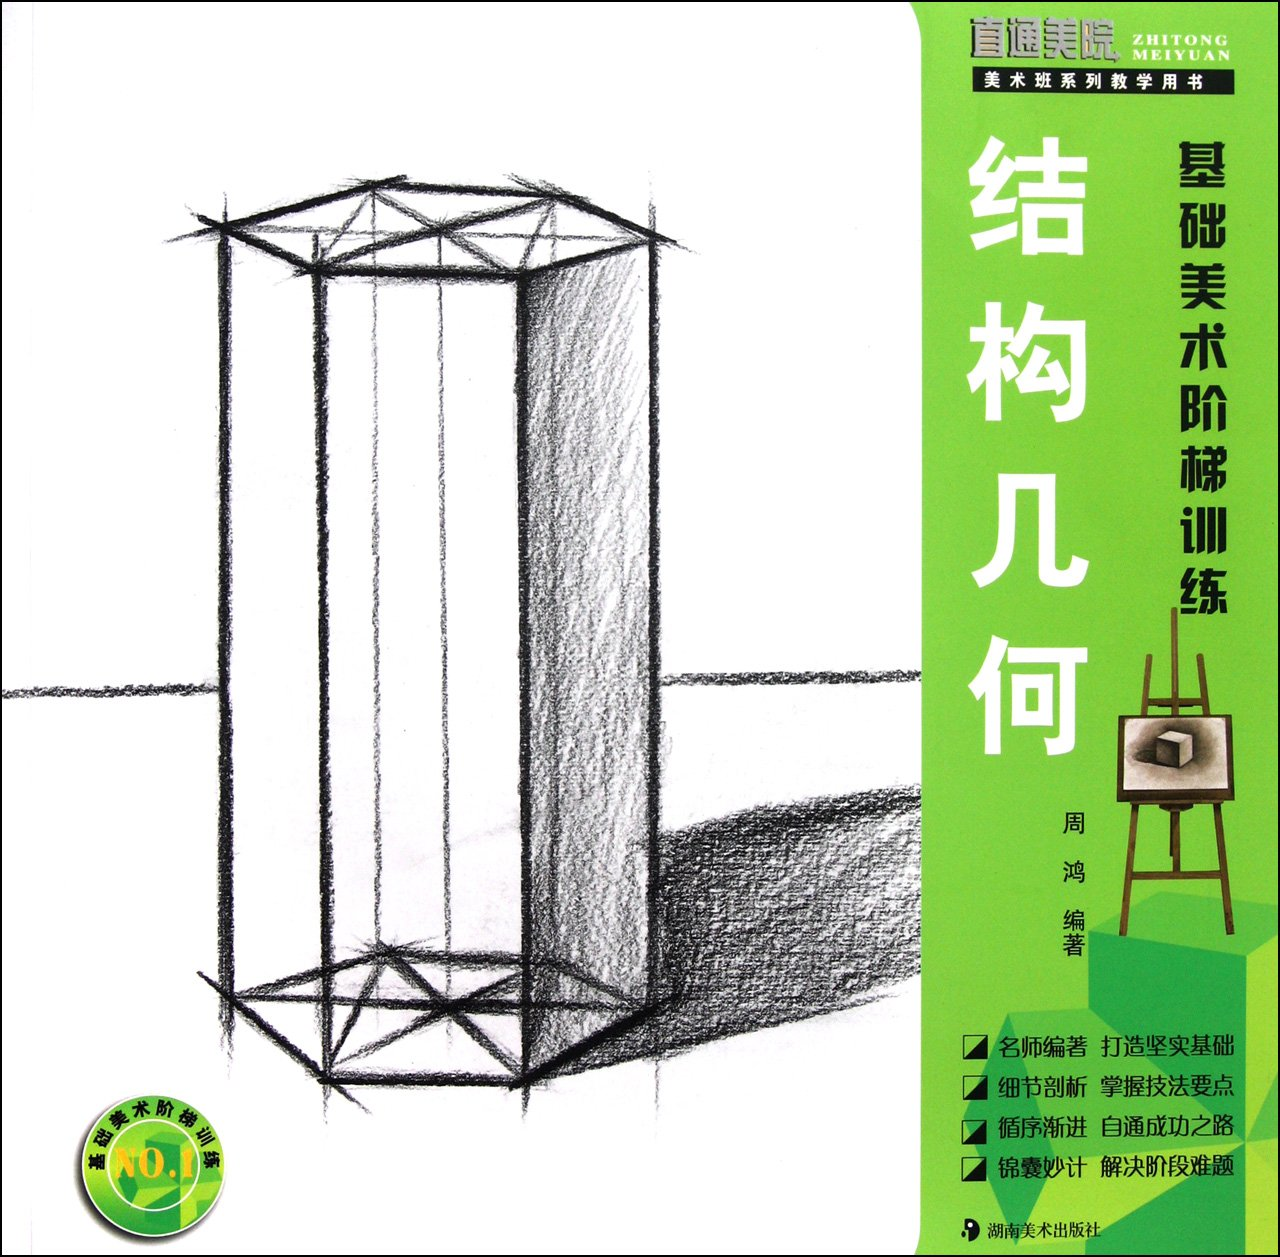 Art teaching book series Basic art step by step Constructive Geometry (Chinese Edition) ebook